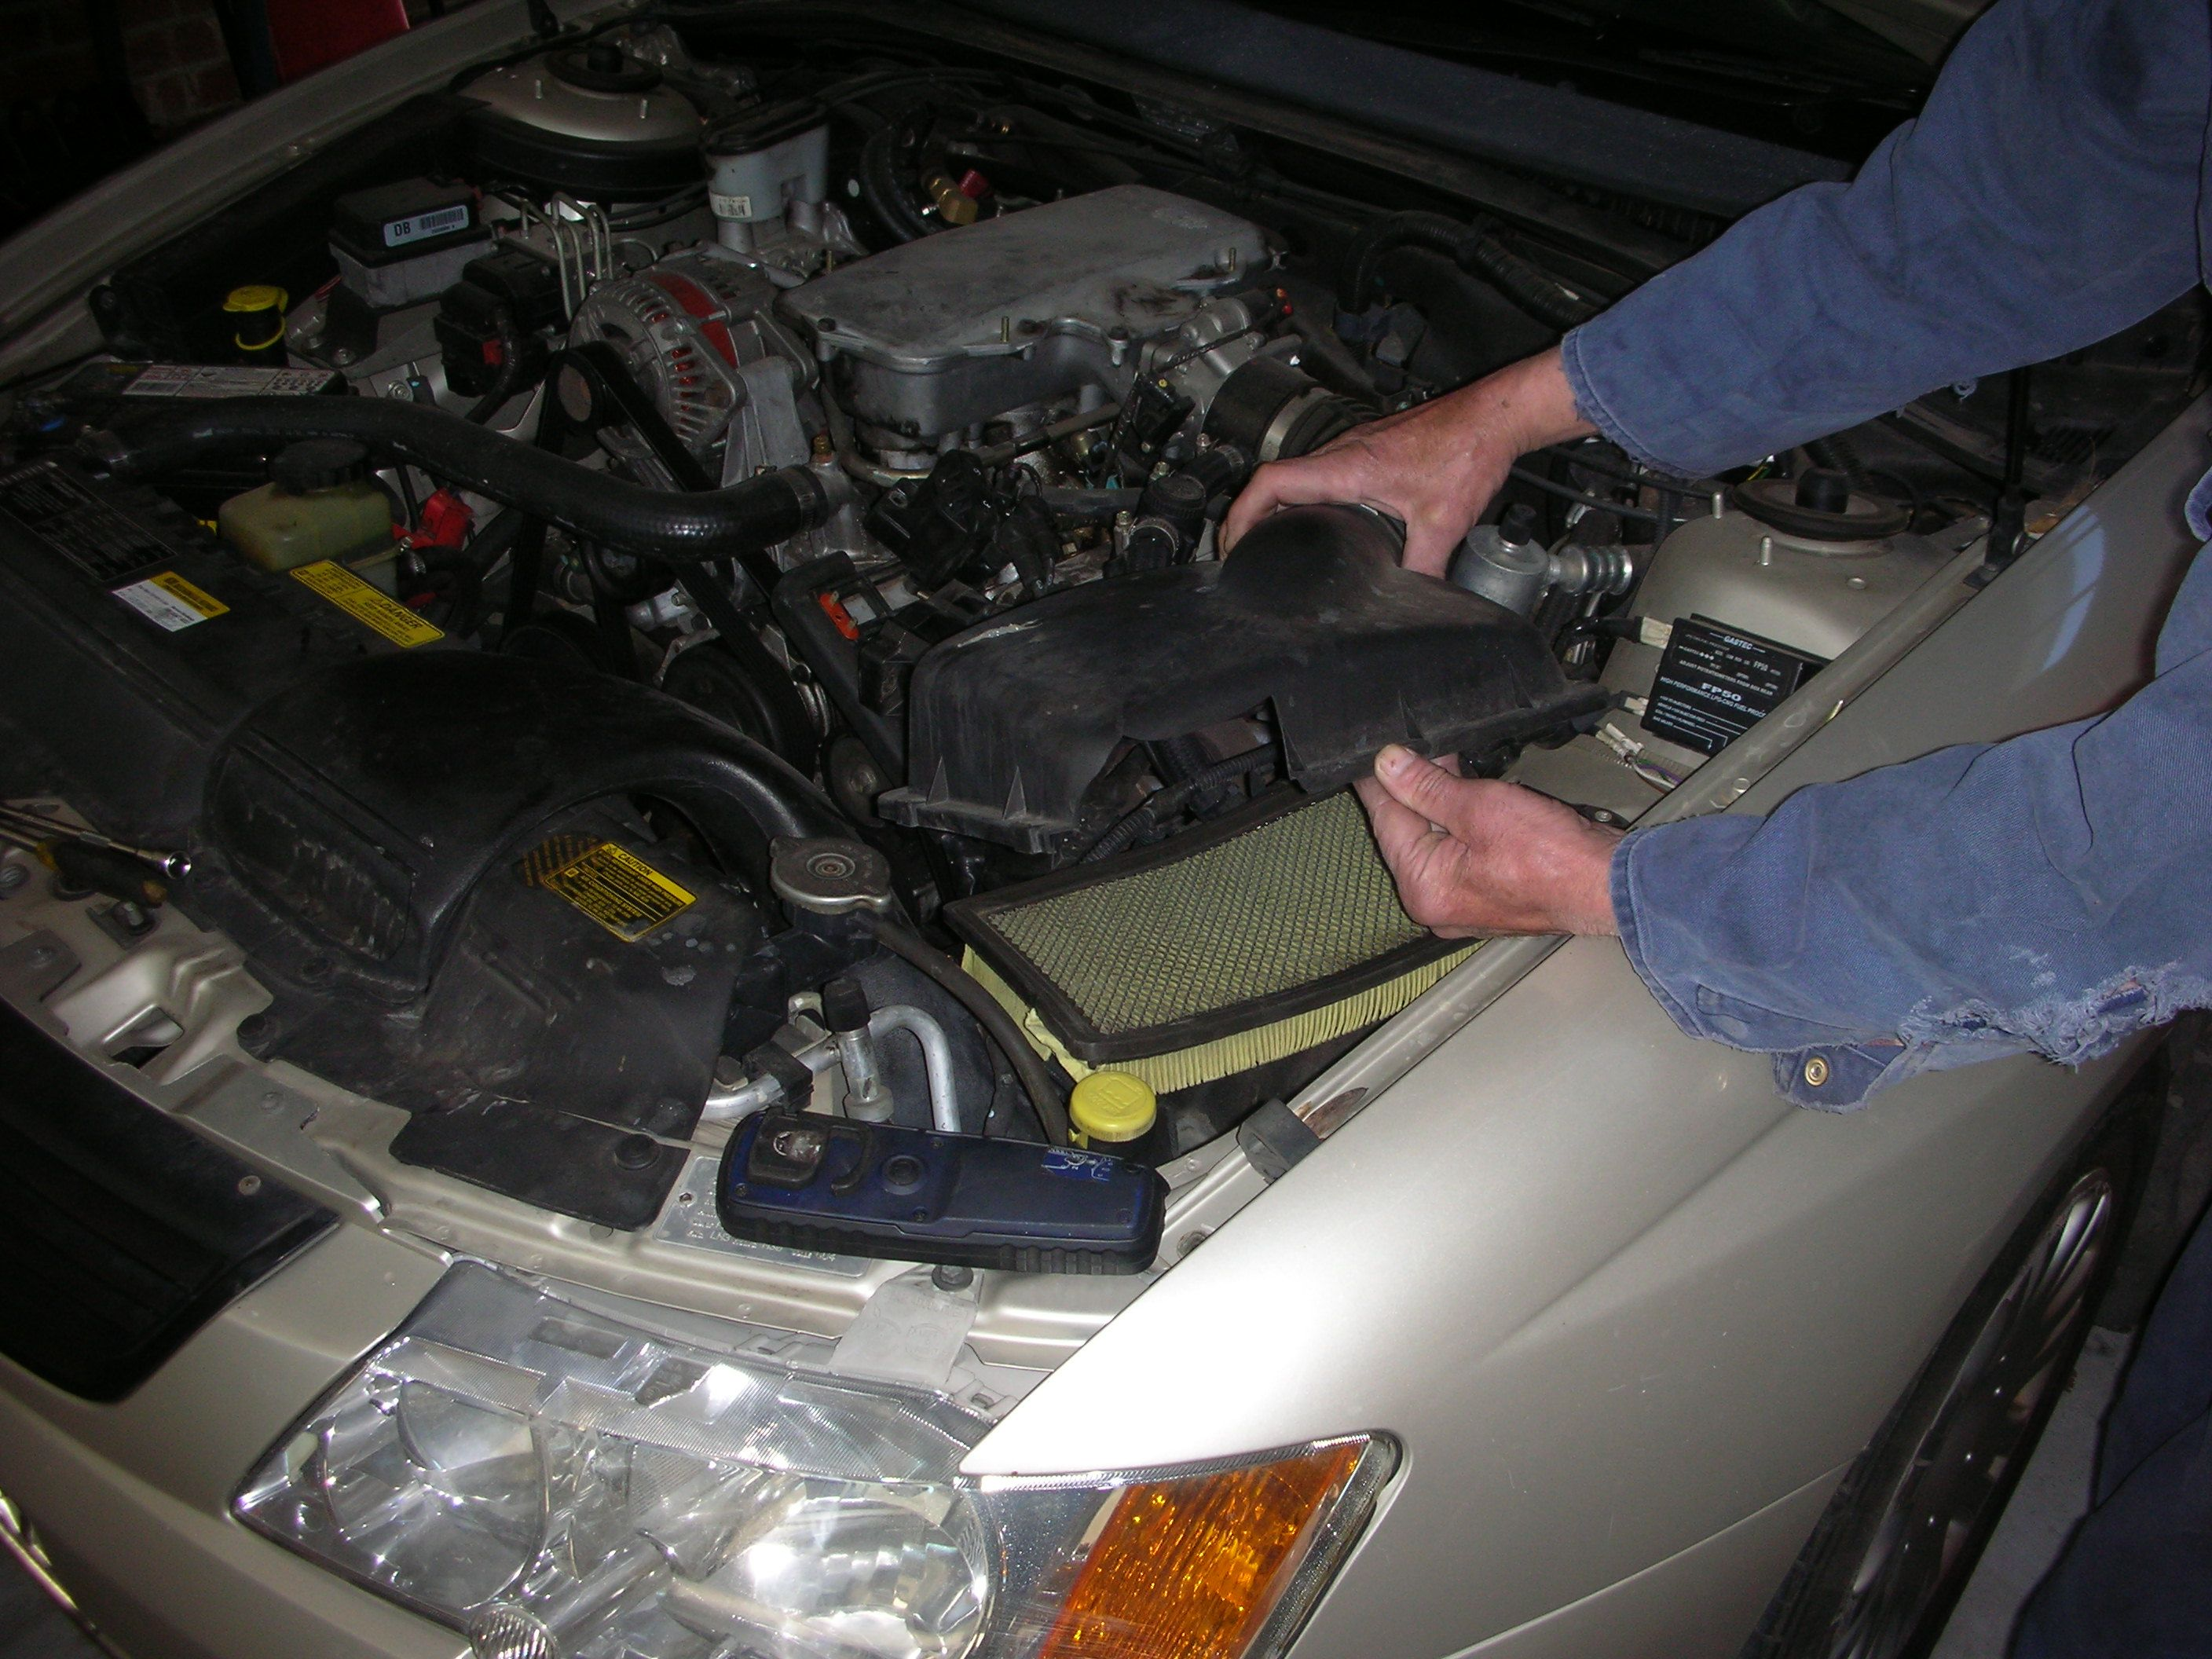 Summer Road Trip? Don't to Get Auto Repair Service